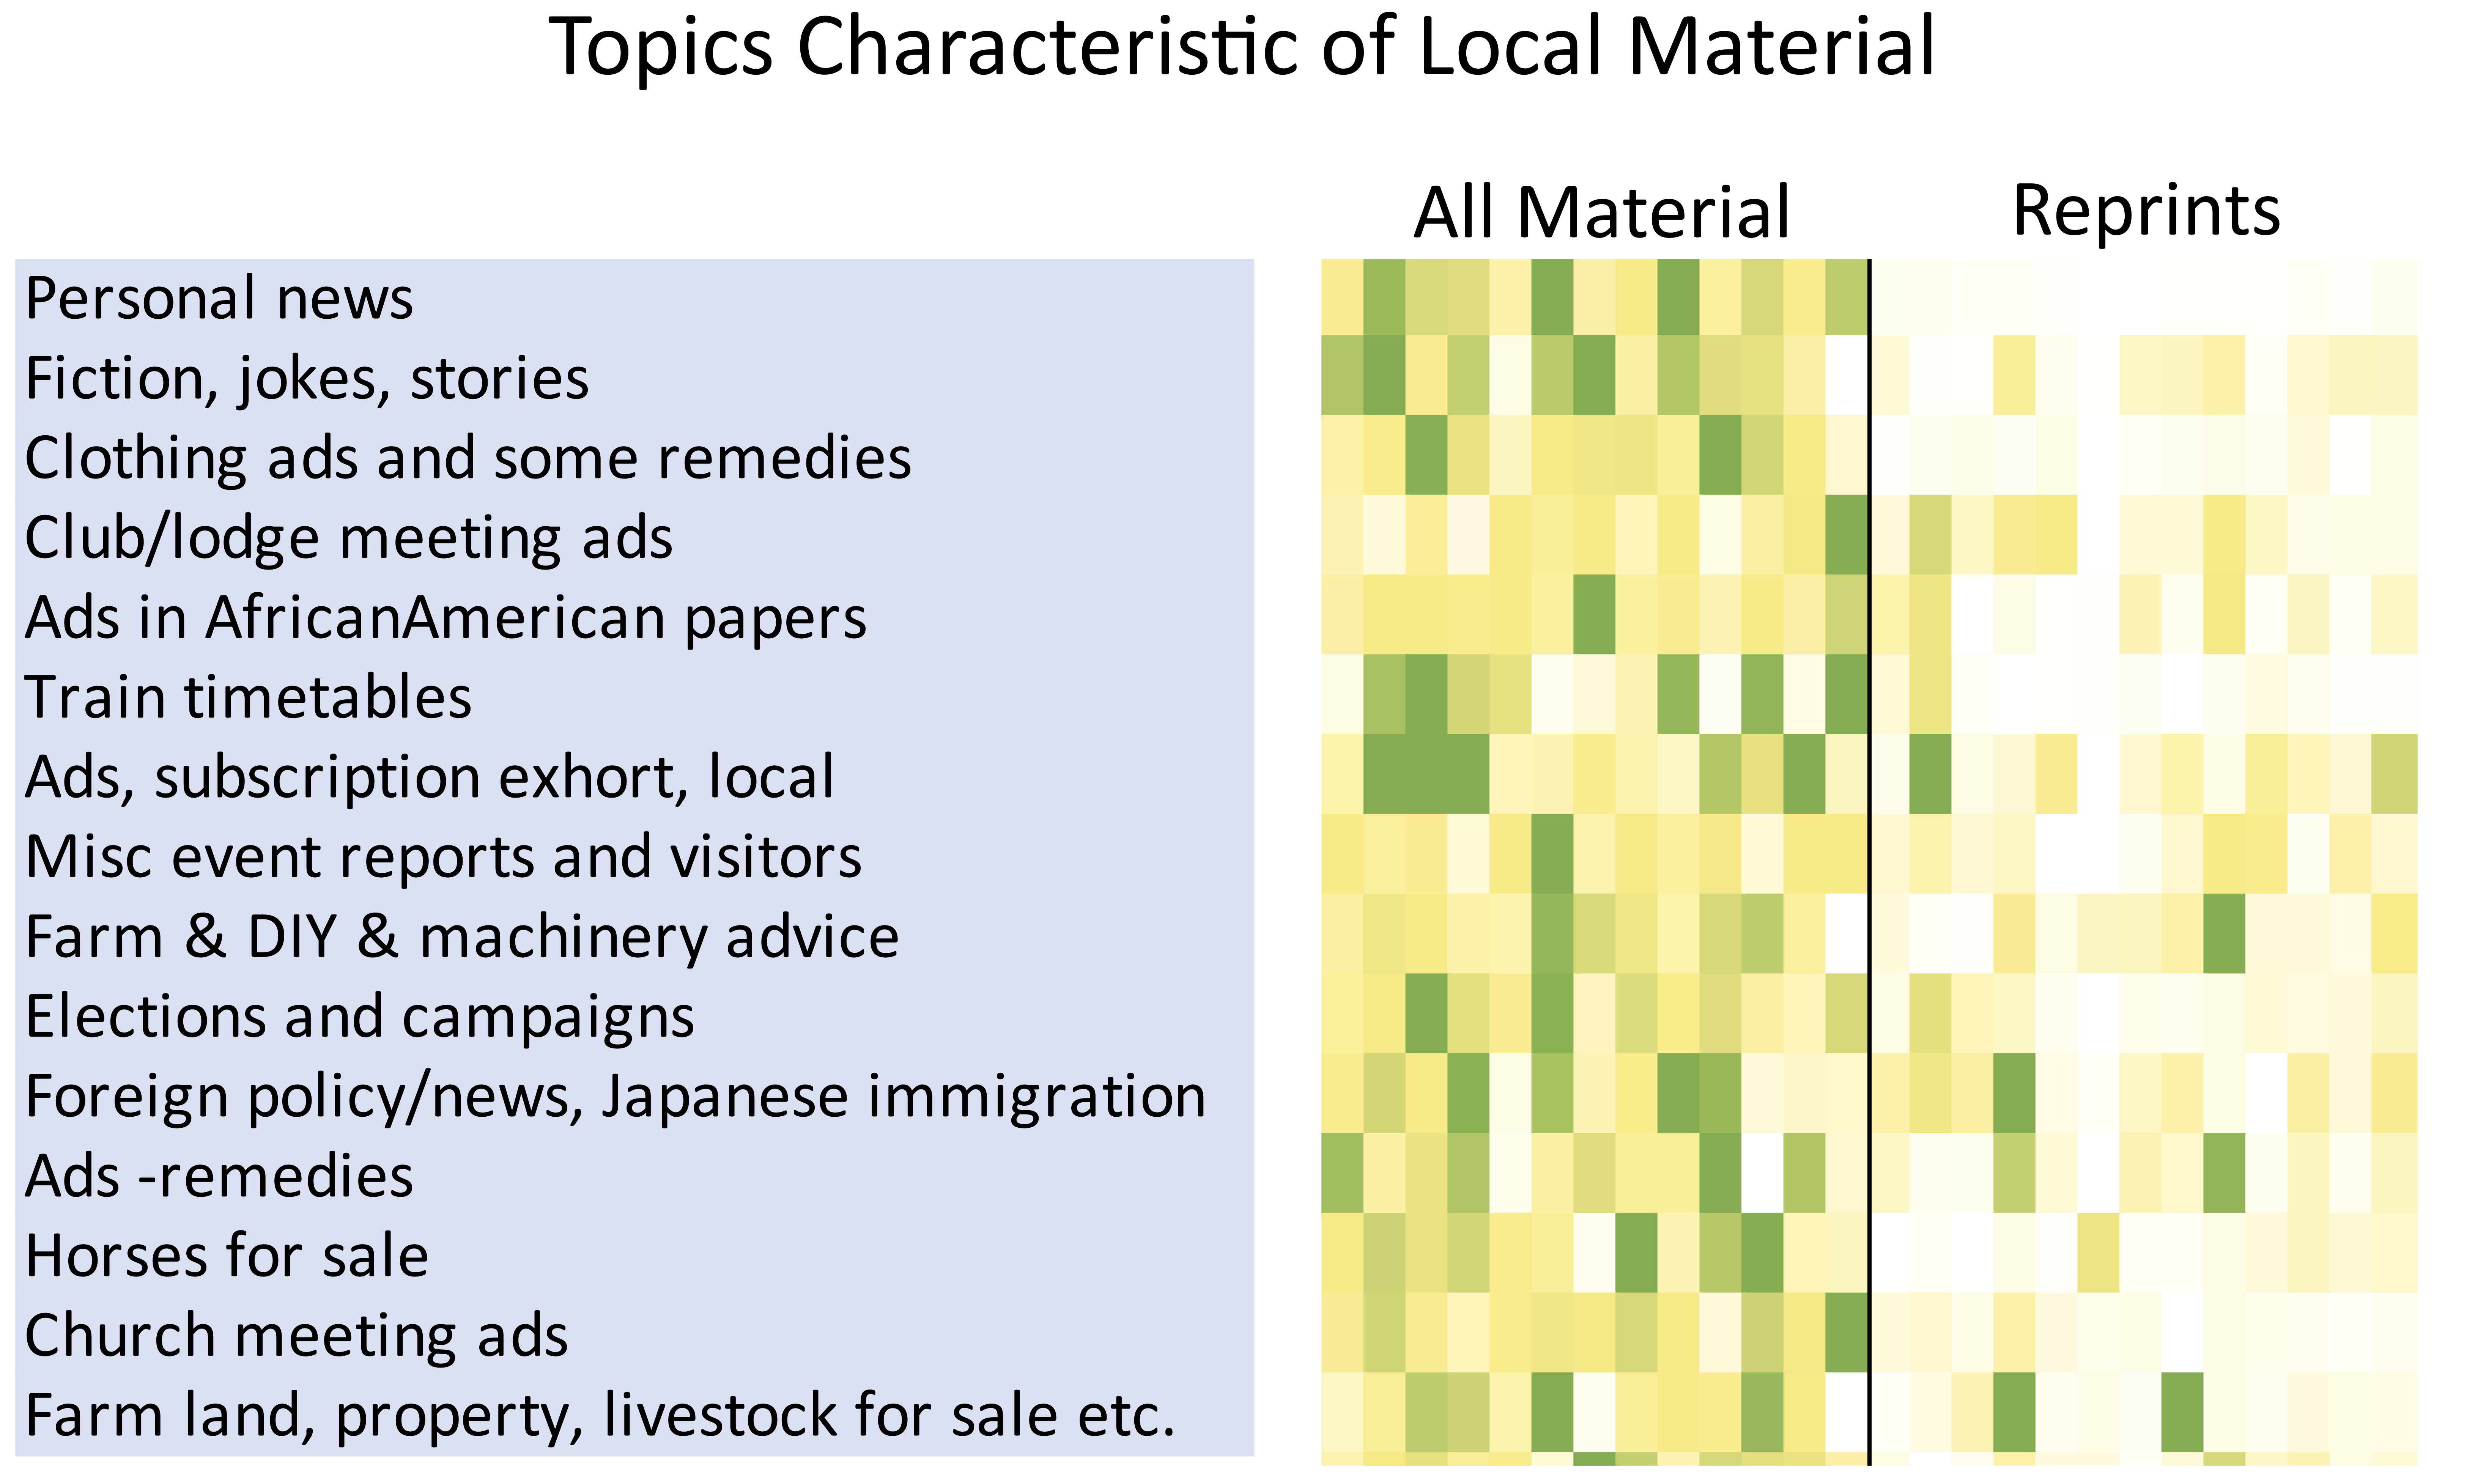 Heat map showing the topics most prominent in all materials ('local') vs. reprints ('national').